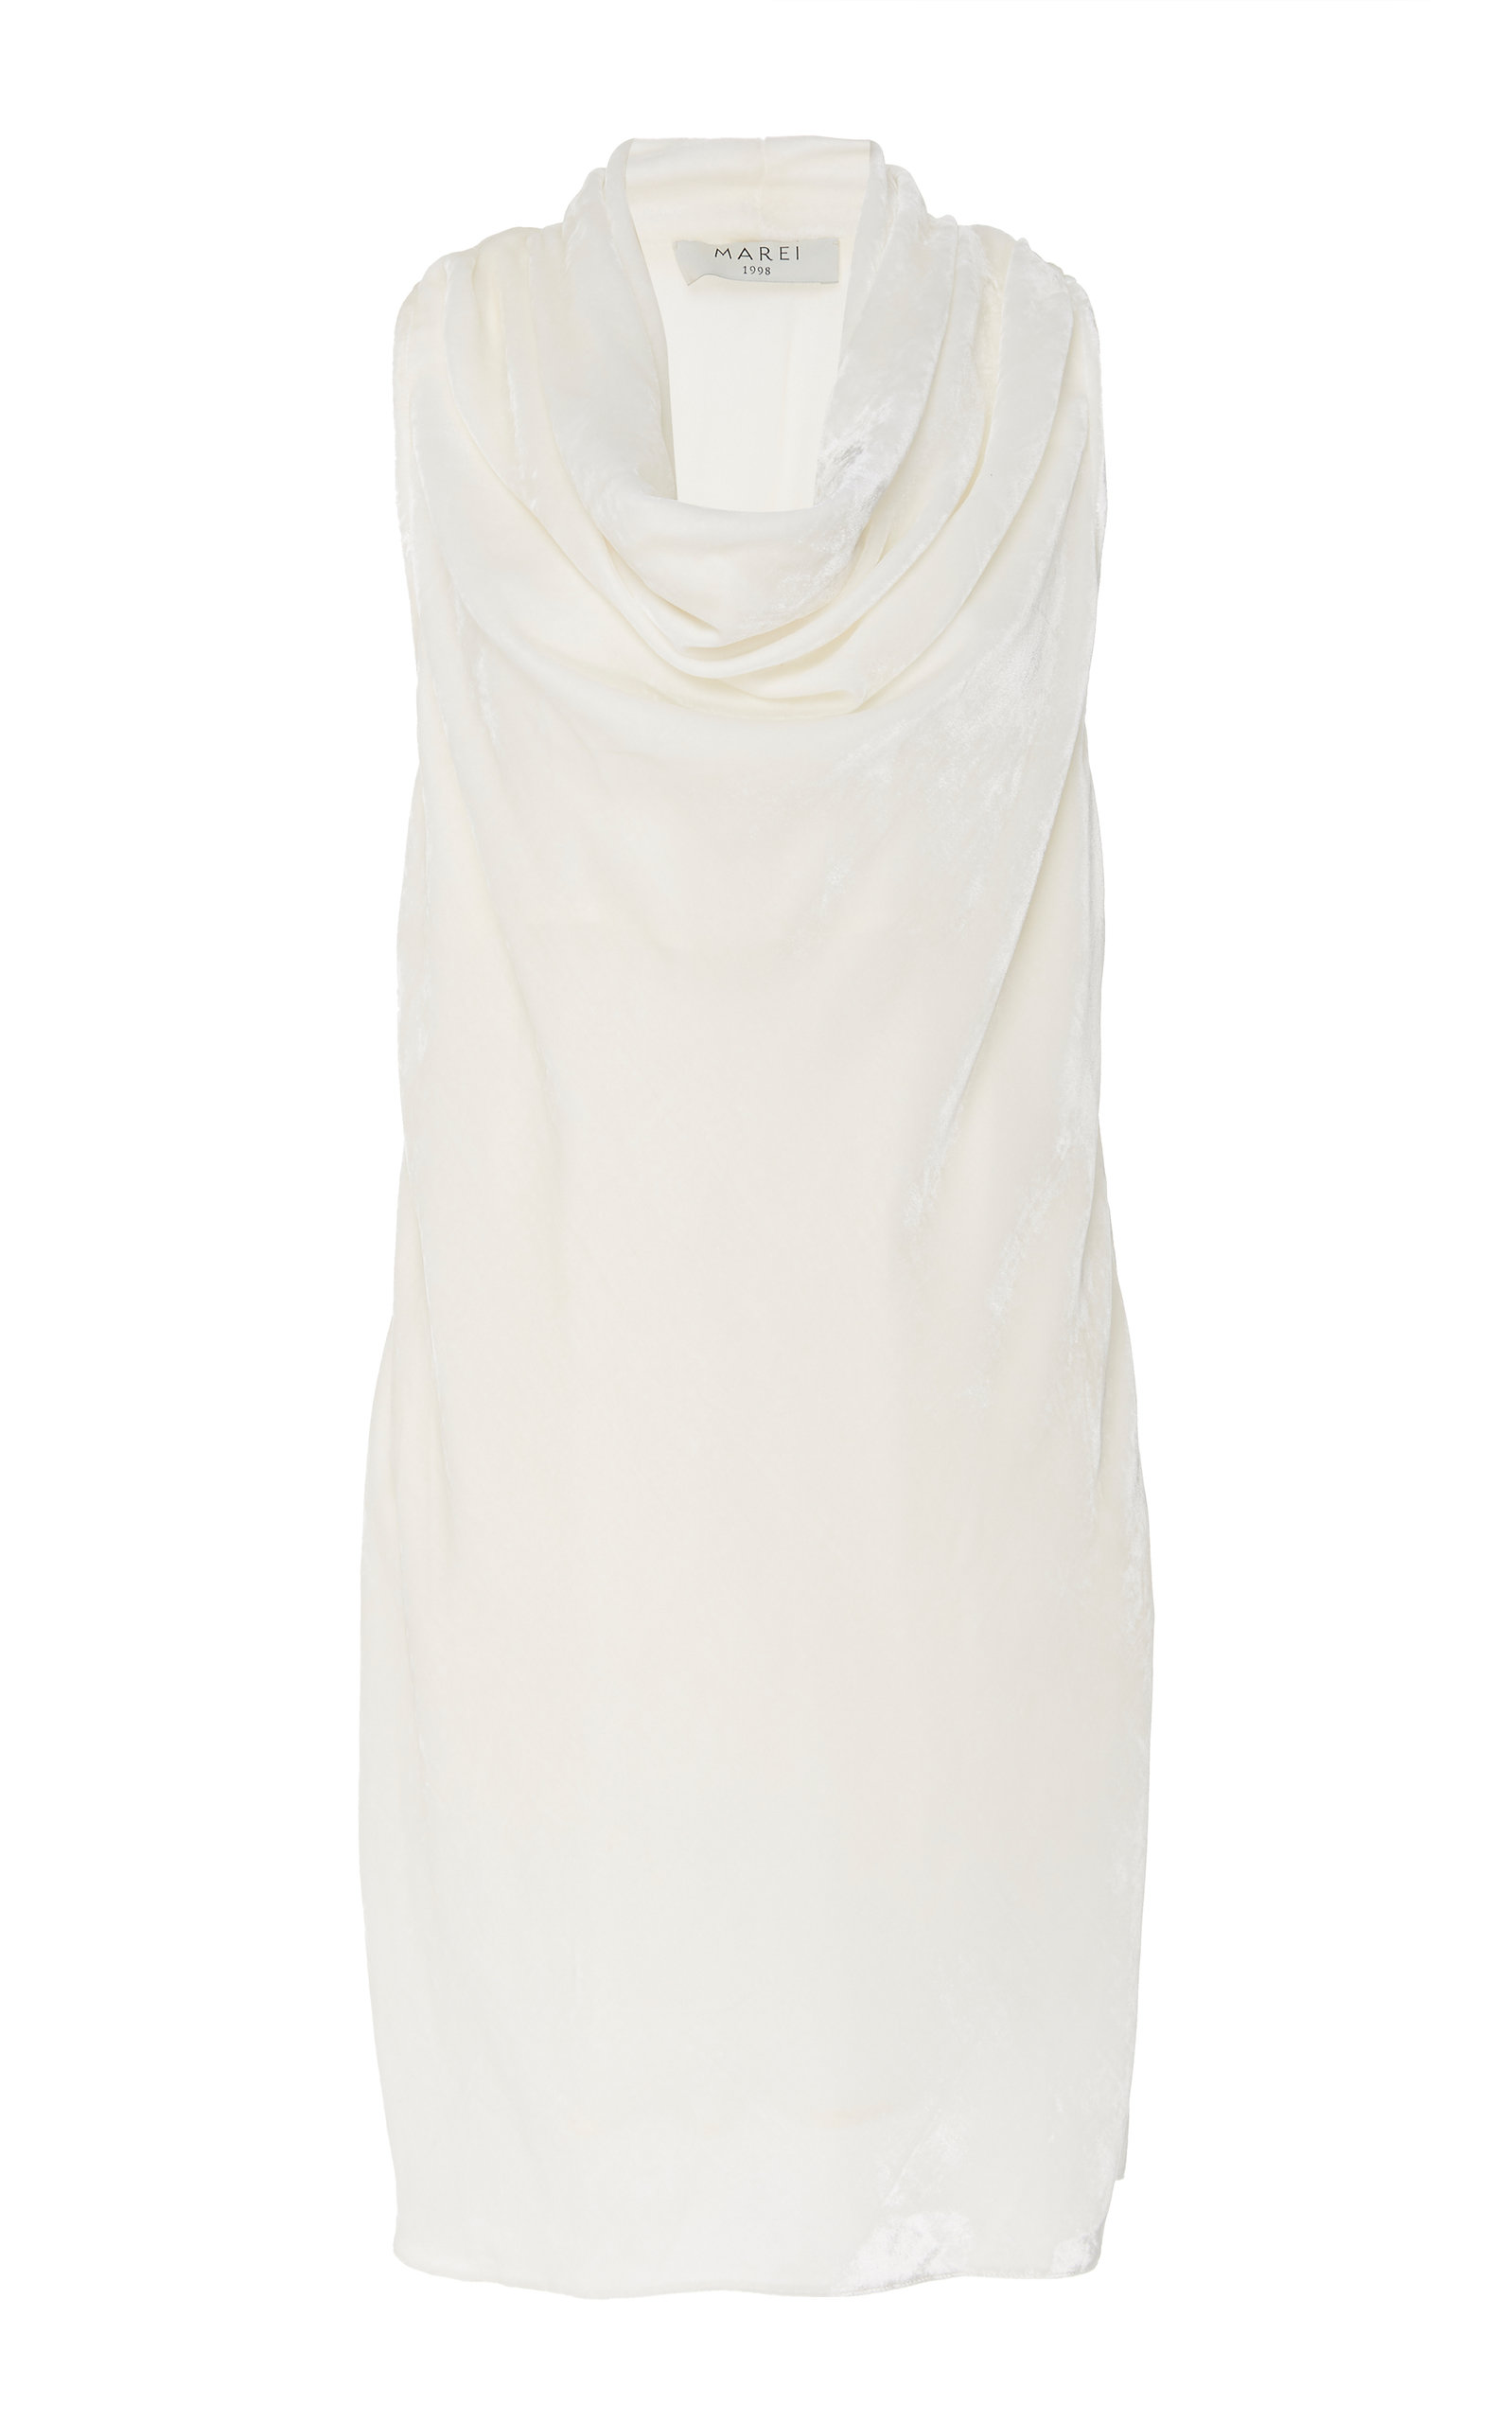 MAREI 1998 Daphne Draped Velvet Mini Dress in White